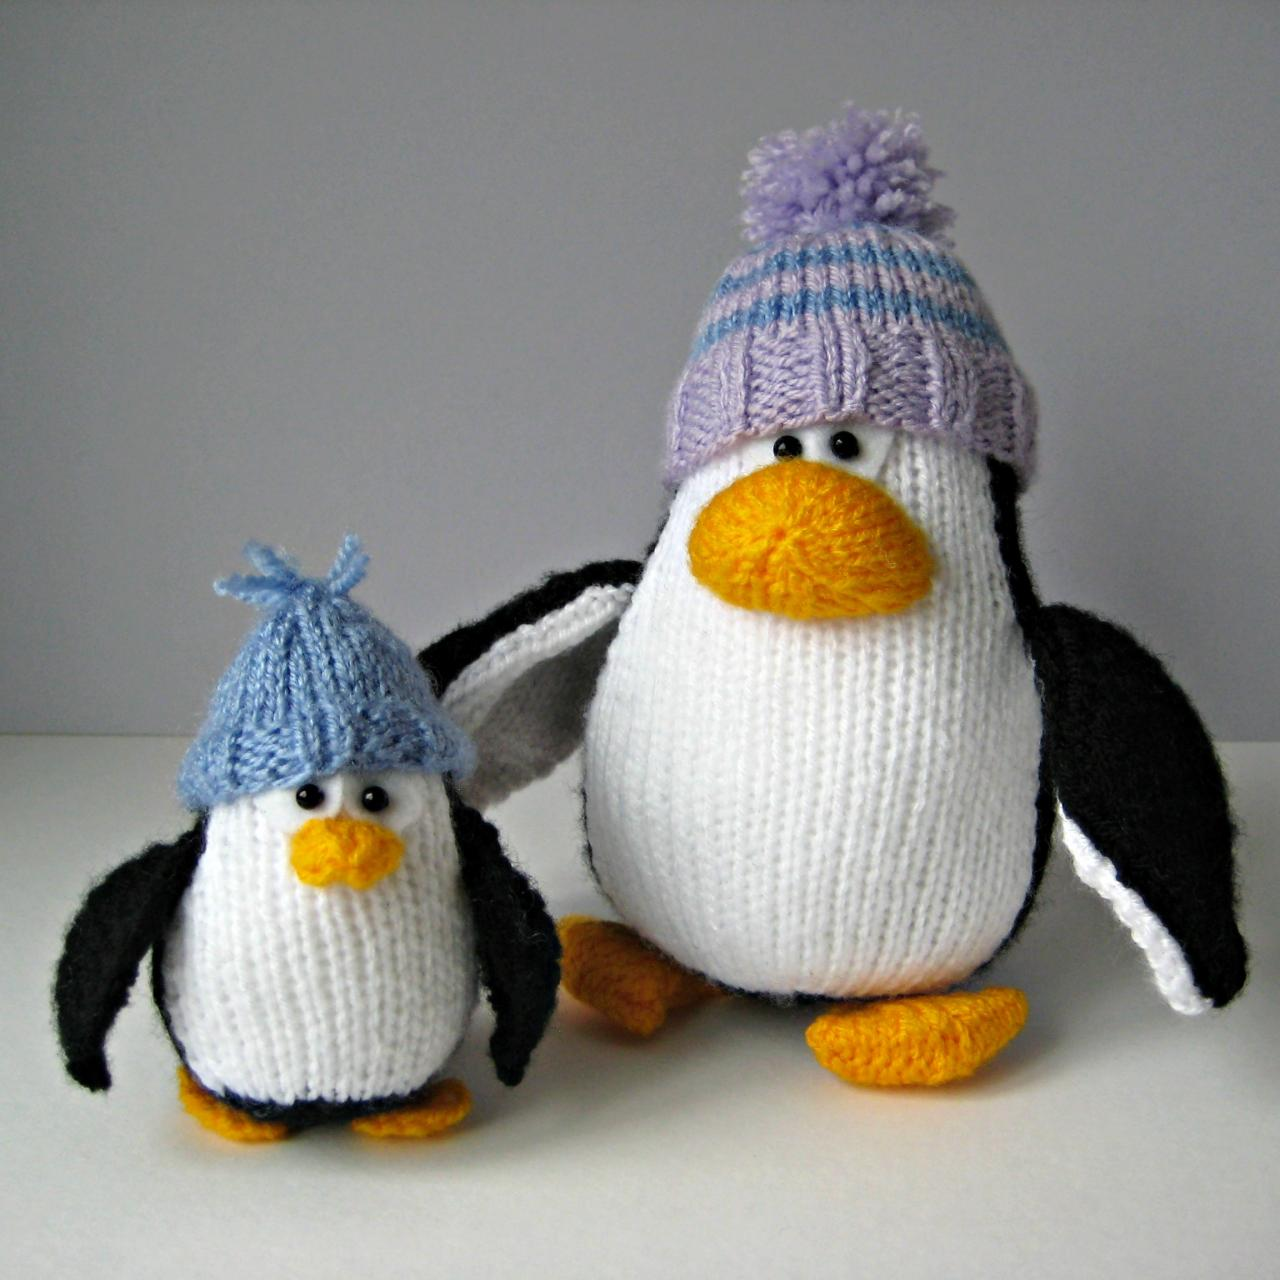 Knitting Pattern For Penguin : Bobble And Bubble Penguins Toy Knitting Patterns on Luulla